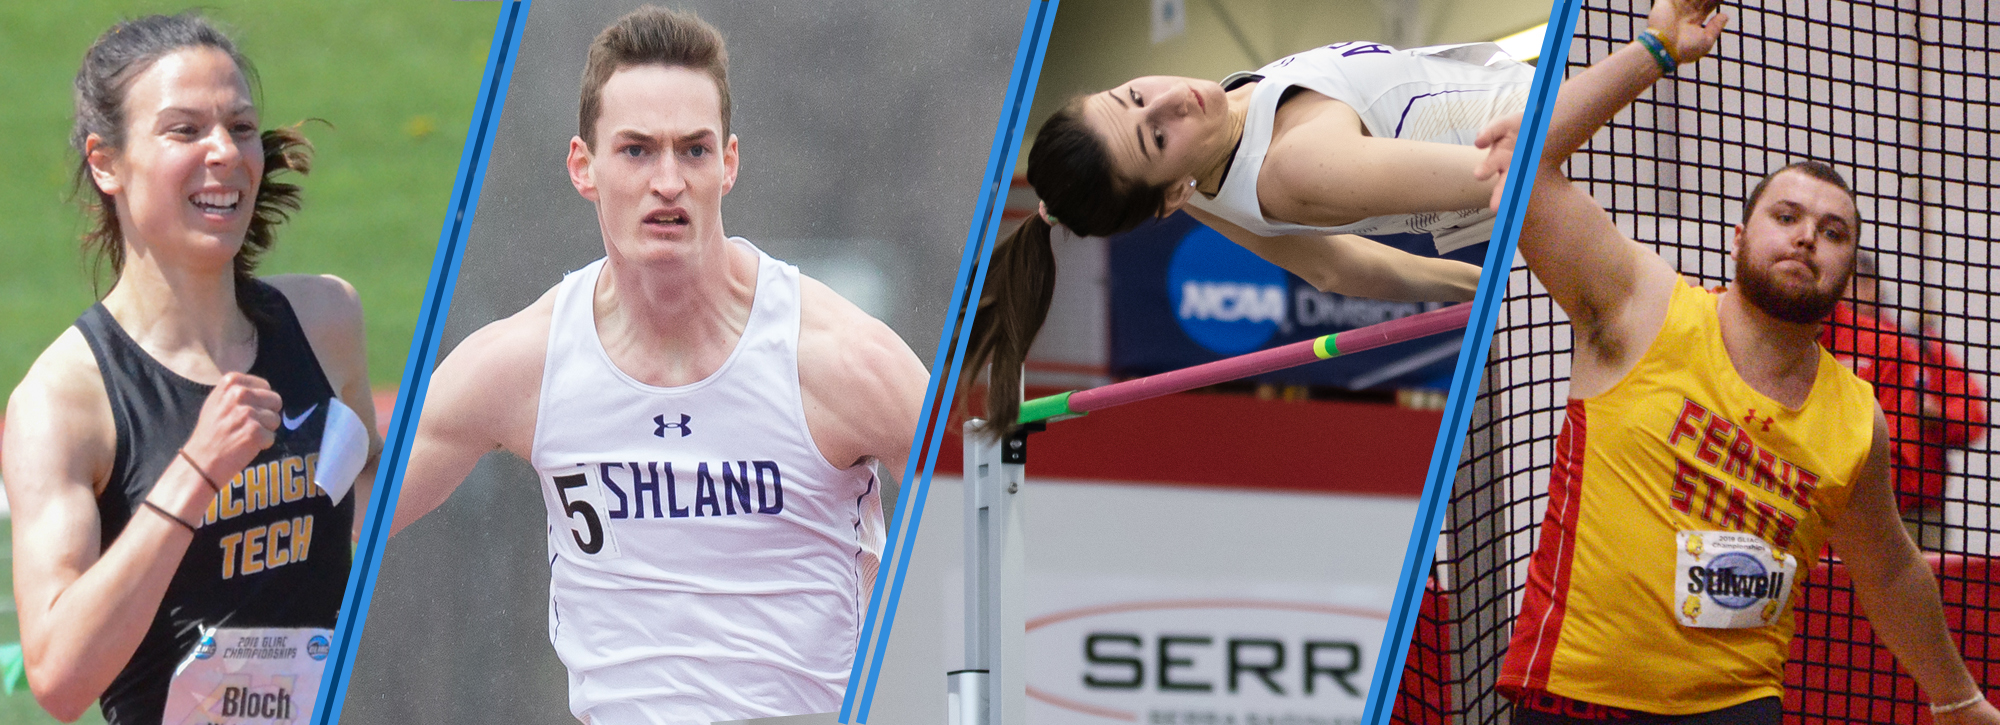 Ashland's Jindra and Bassitt, Ferris State's Stilwell and Tech's Bloch earn track and field weekly honors